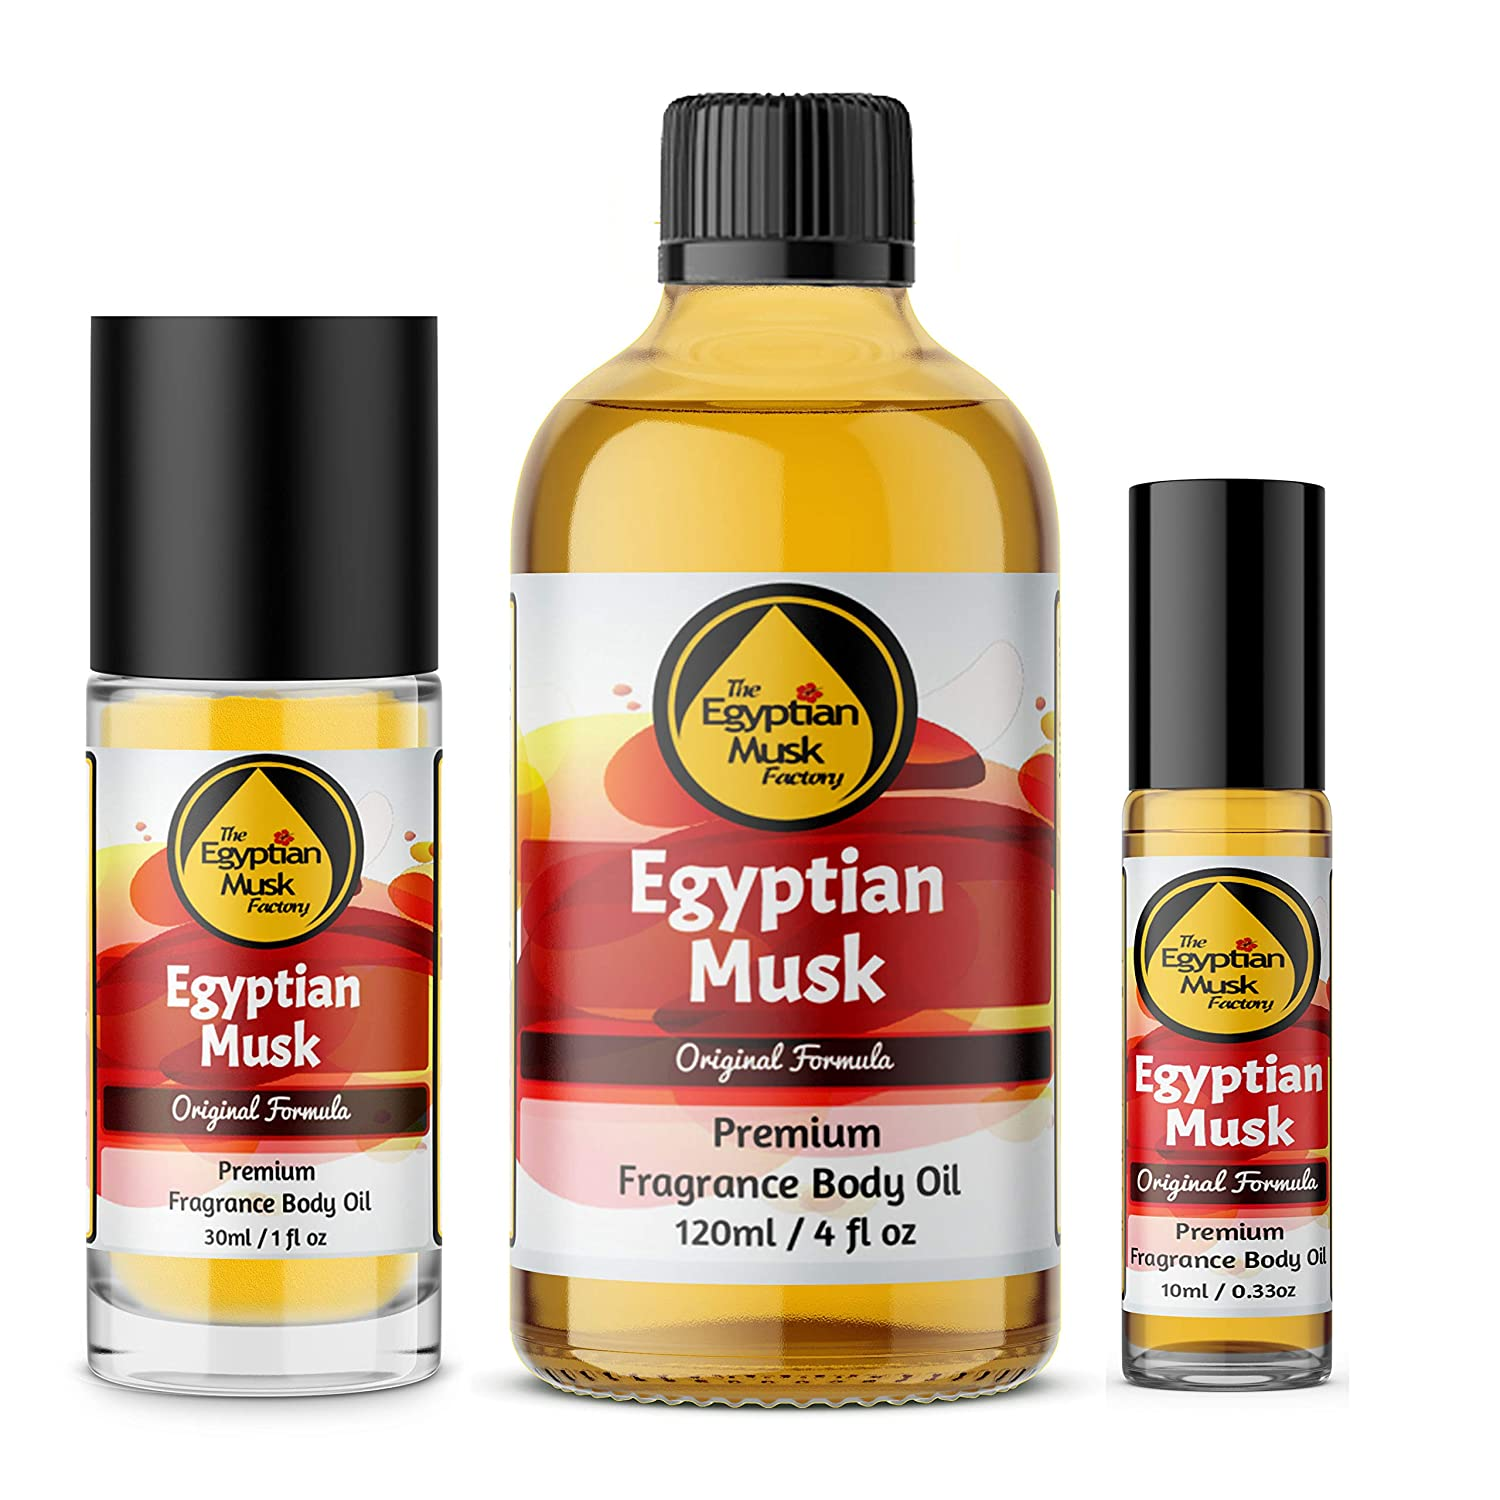 Egyptian Musk Oil, Choose from Roll On to 1oz - 4oz Glass Bottle, by WagsMarket - The Egyptian Musk Factory™ (4oz Glass Bottle)